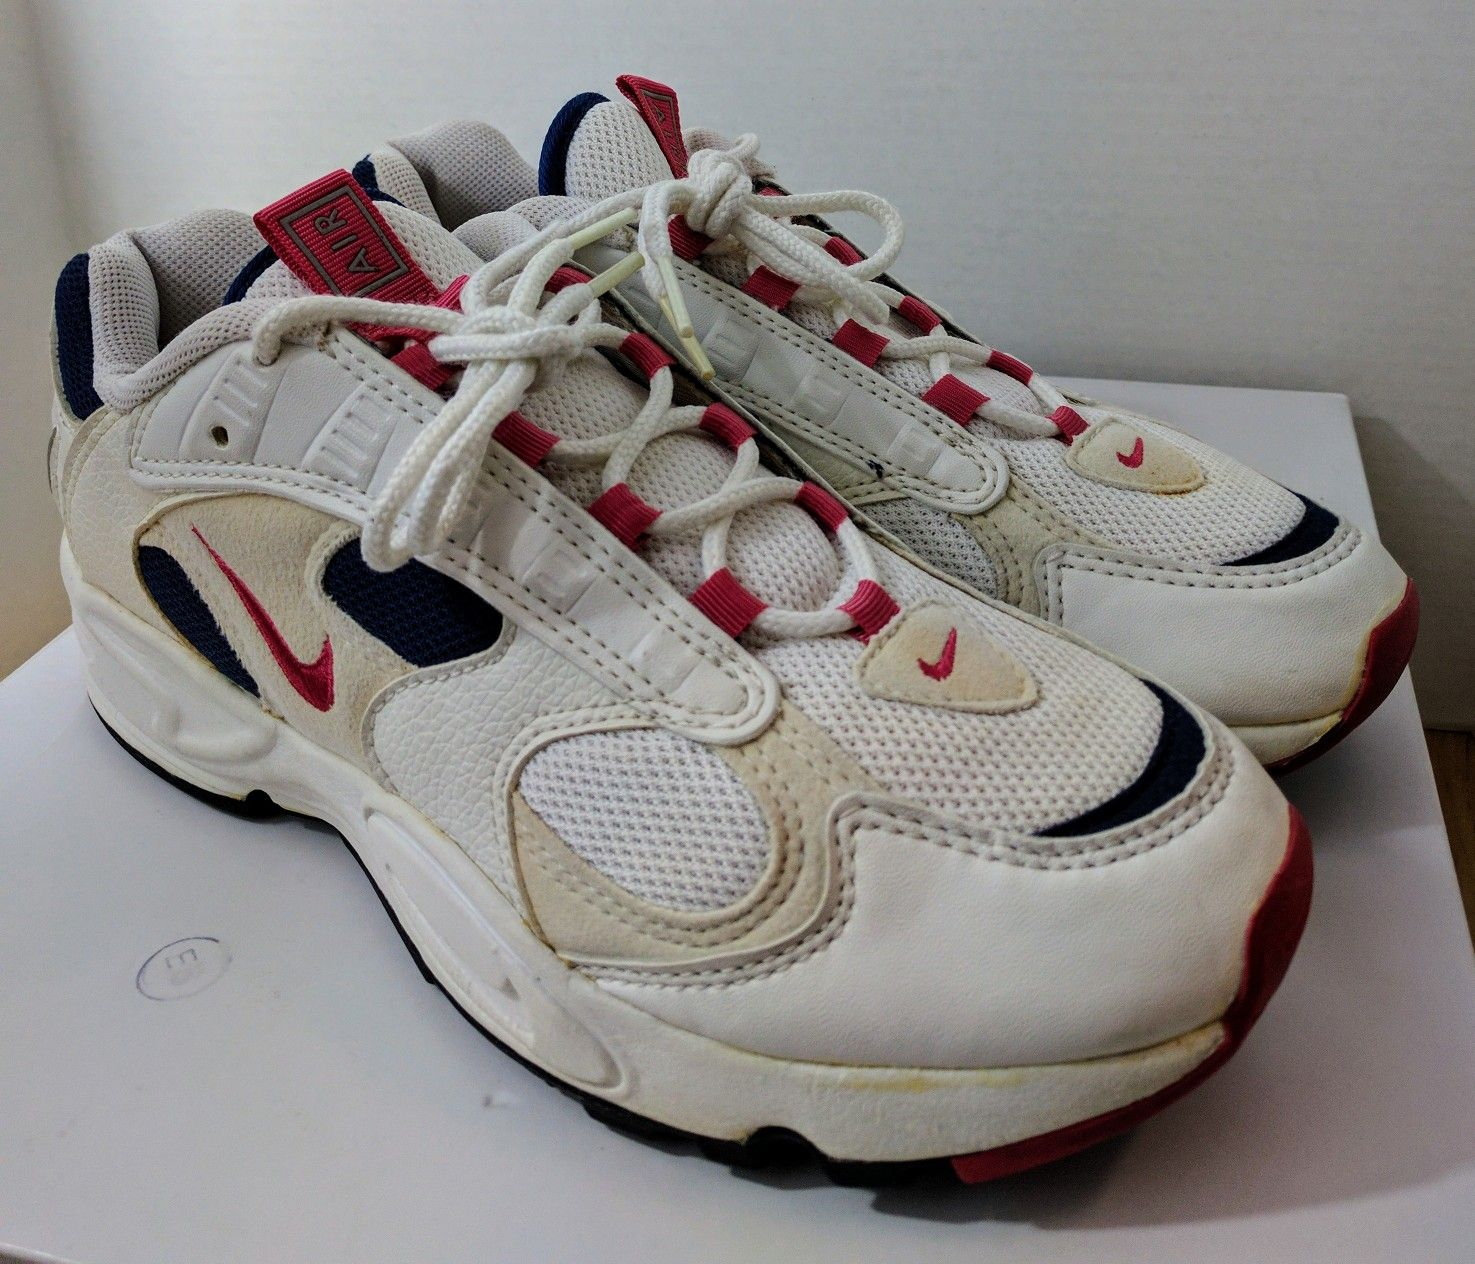 Vintage Nike Air Structure Triax. Did Kanye get his inspiration for ...